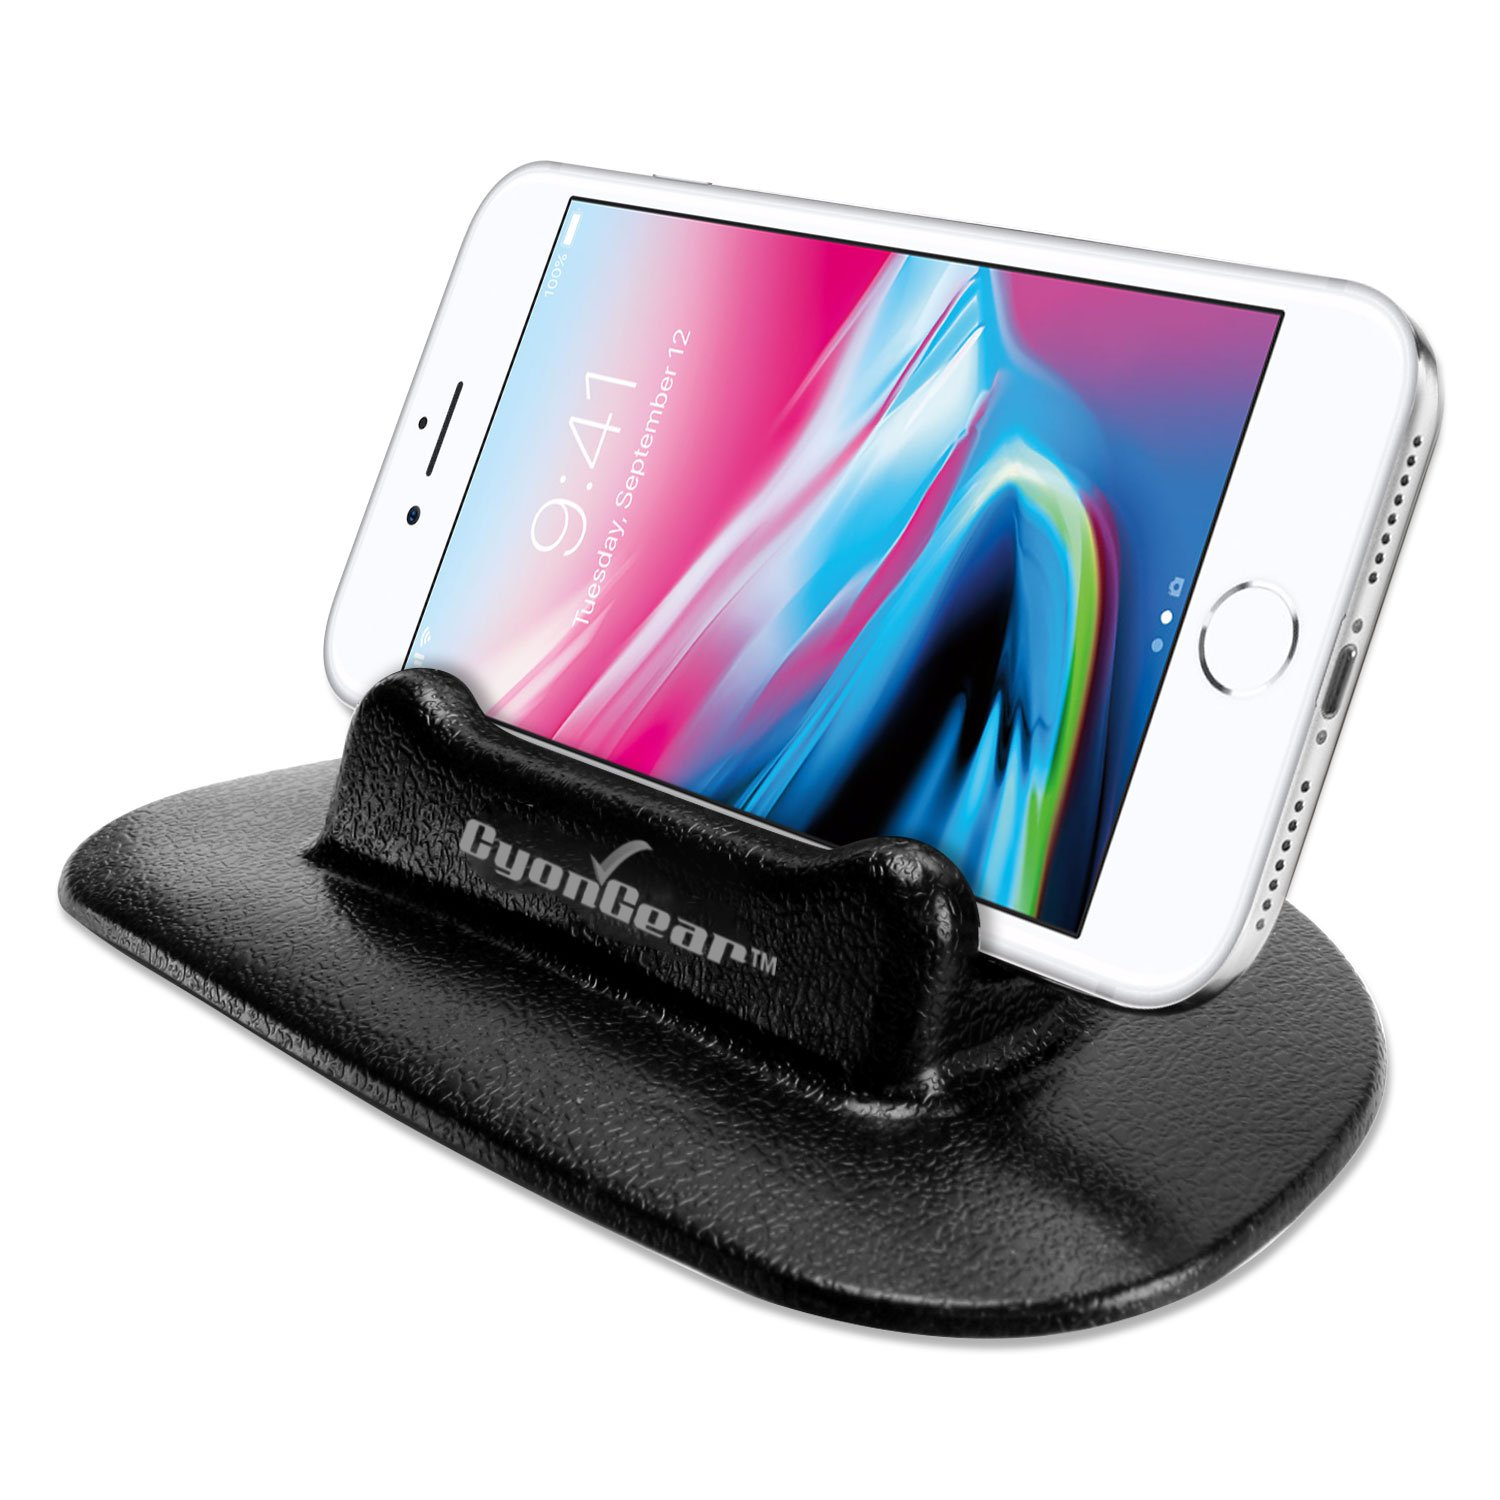 Cellphone Cellet PH2211 CyonGear Universal Silicone Dashboard Anti-Slip Mount Holder Compatible for Compatible for iPhone Xs//Max//Xr//X//8//8Plus//7//6//5 Note 9//8//5 Galaxy S9//8//7//6 Google Pixel XL Motorola LG HTC GPS